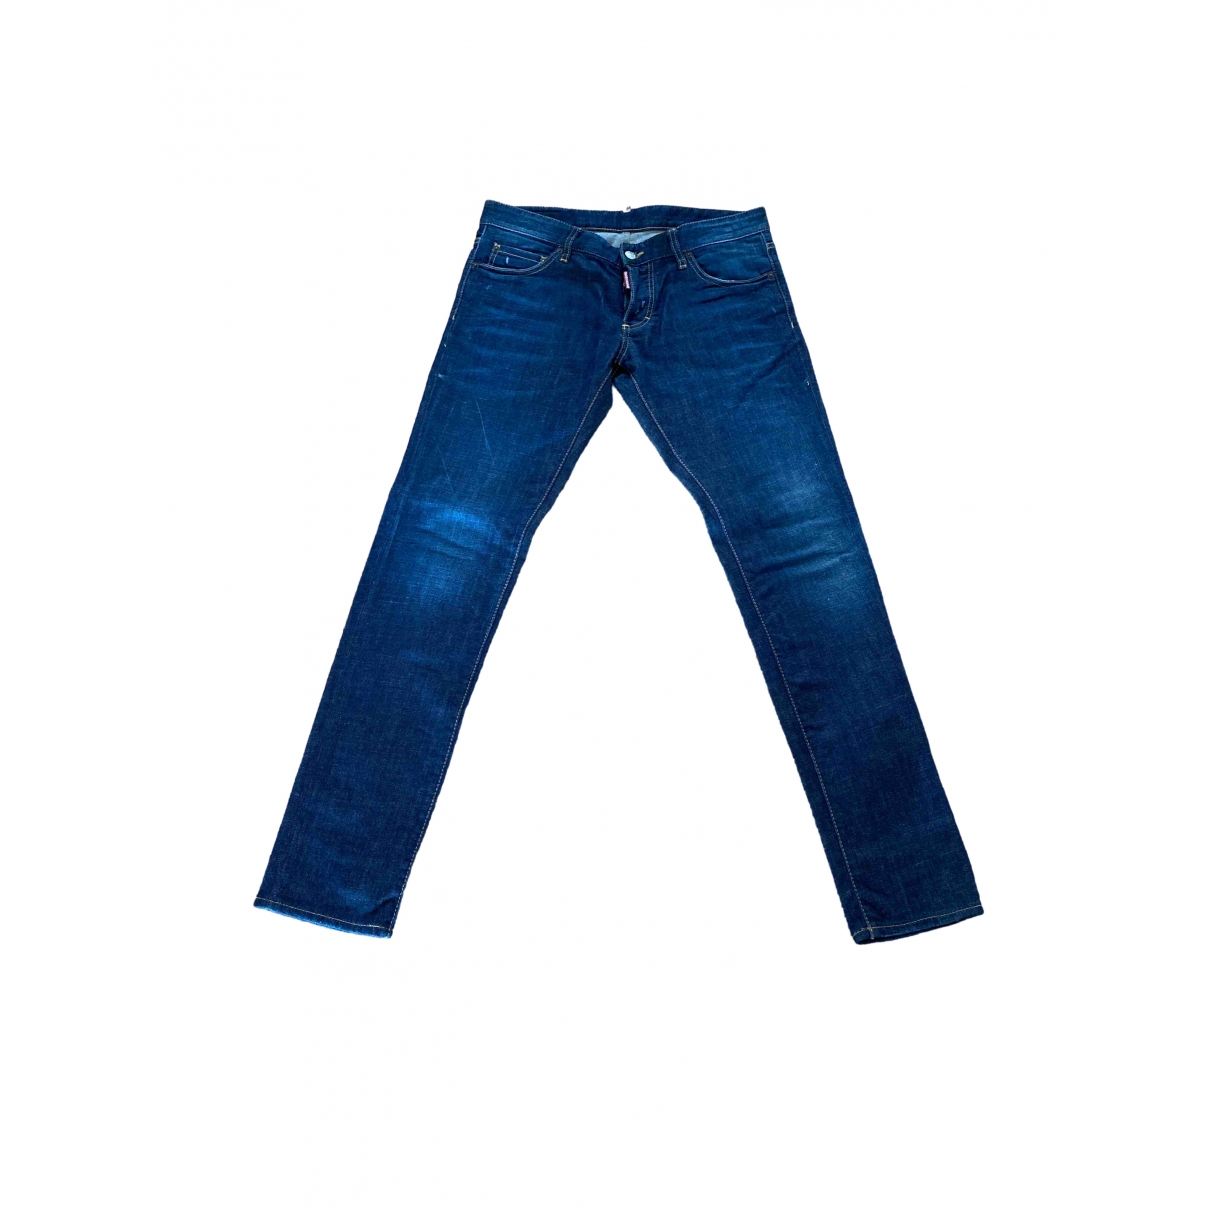 Dsquared2 \N Blue Cotton - elasthane Jeans for Men 34 US